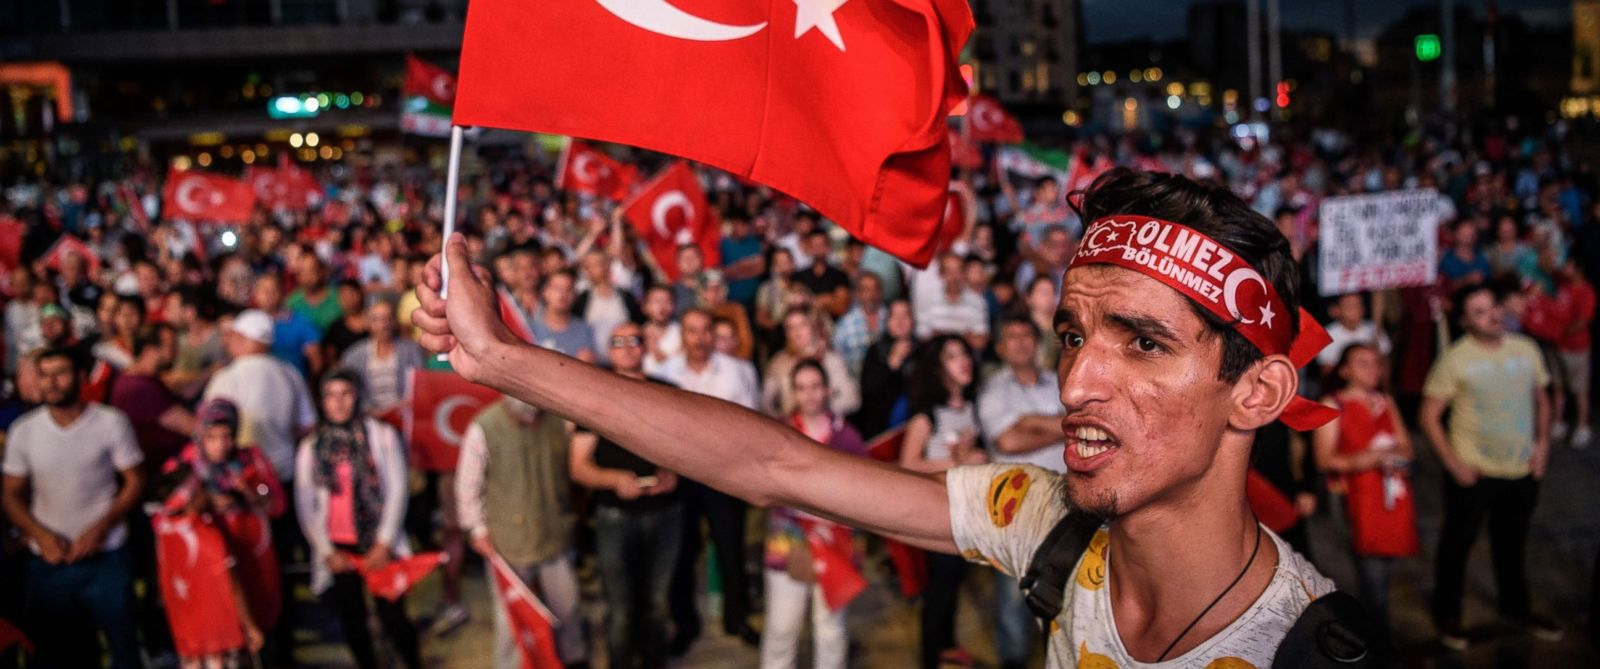 PHOTO: Erdogan supporters gather at Taksim square on July 20, 2016 during a rally in Istanbul, following the failed military coup attempt of July 15.